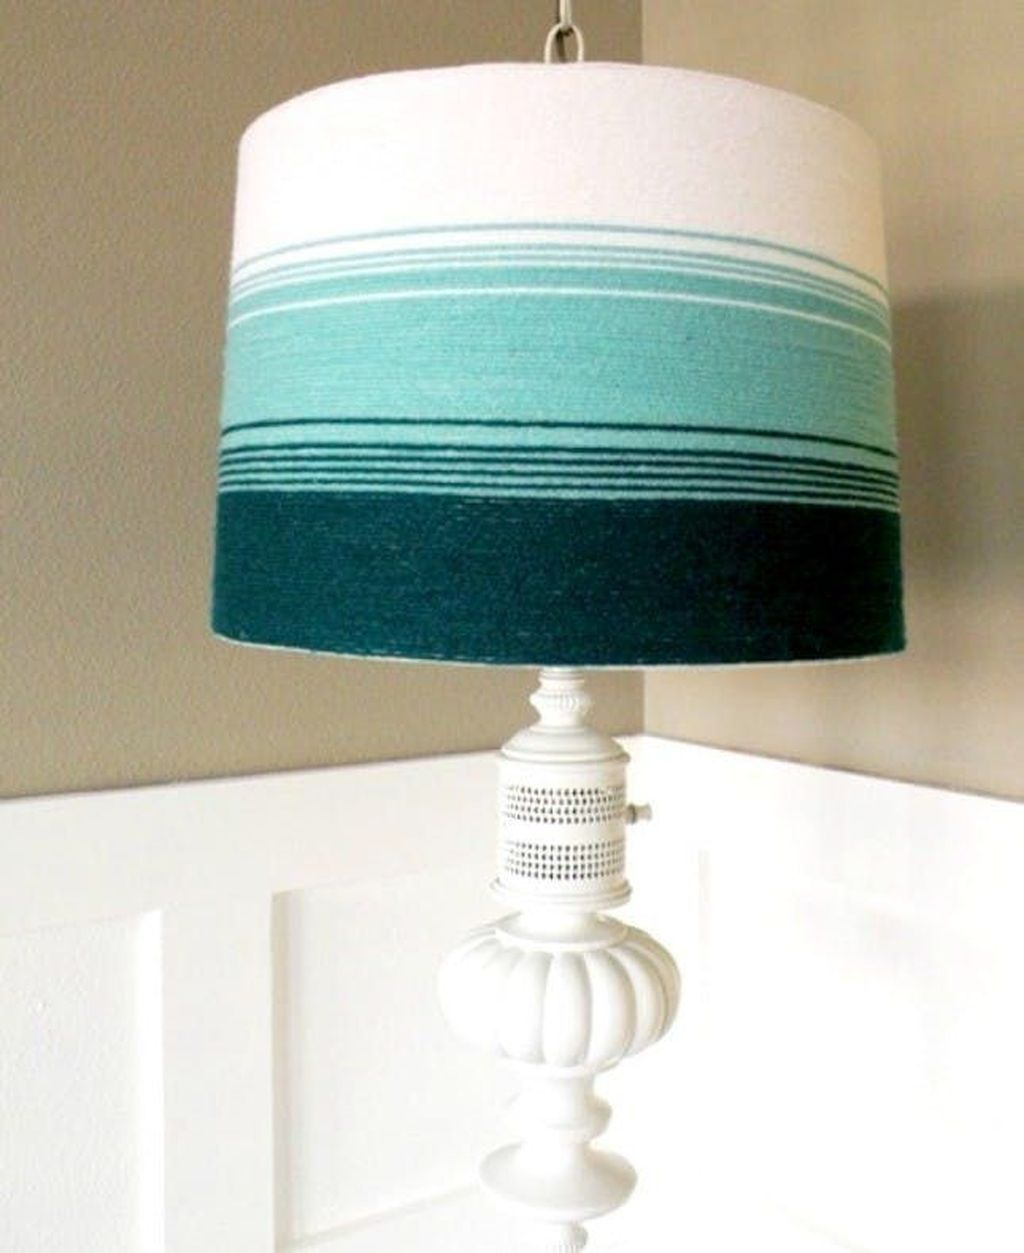 Lampshade with different color of yarn Extra Appealing DIY Lampshades To Brighten Up Your Room Every Day